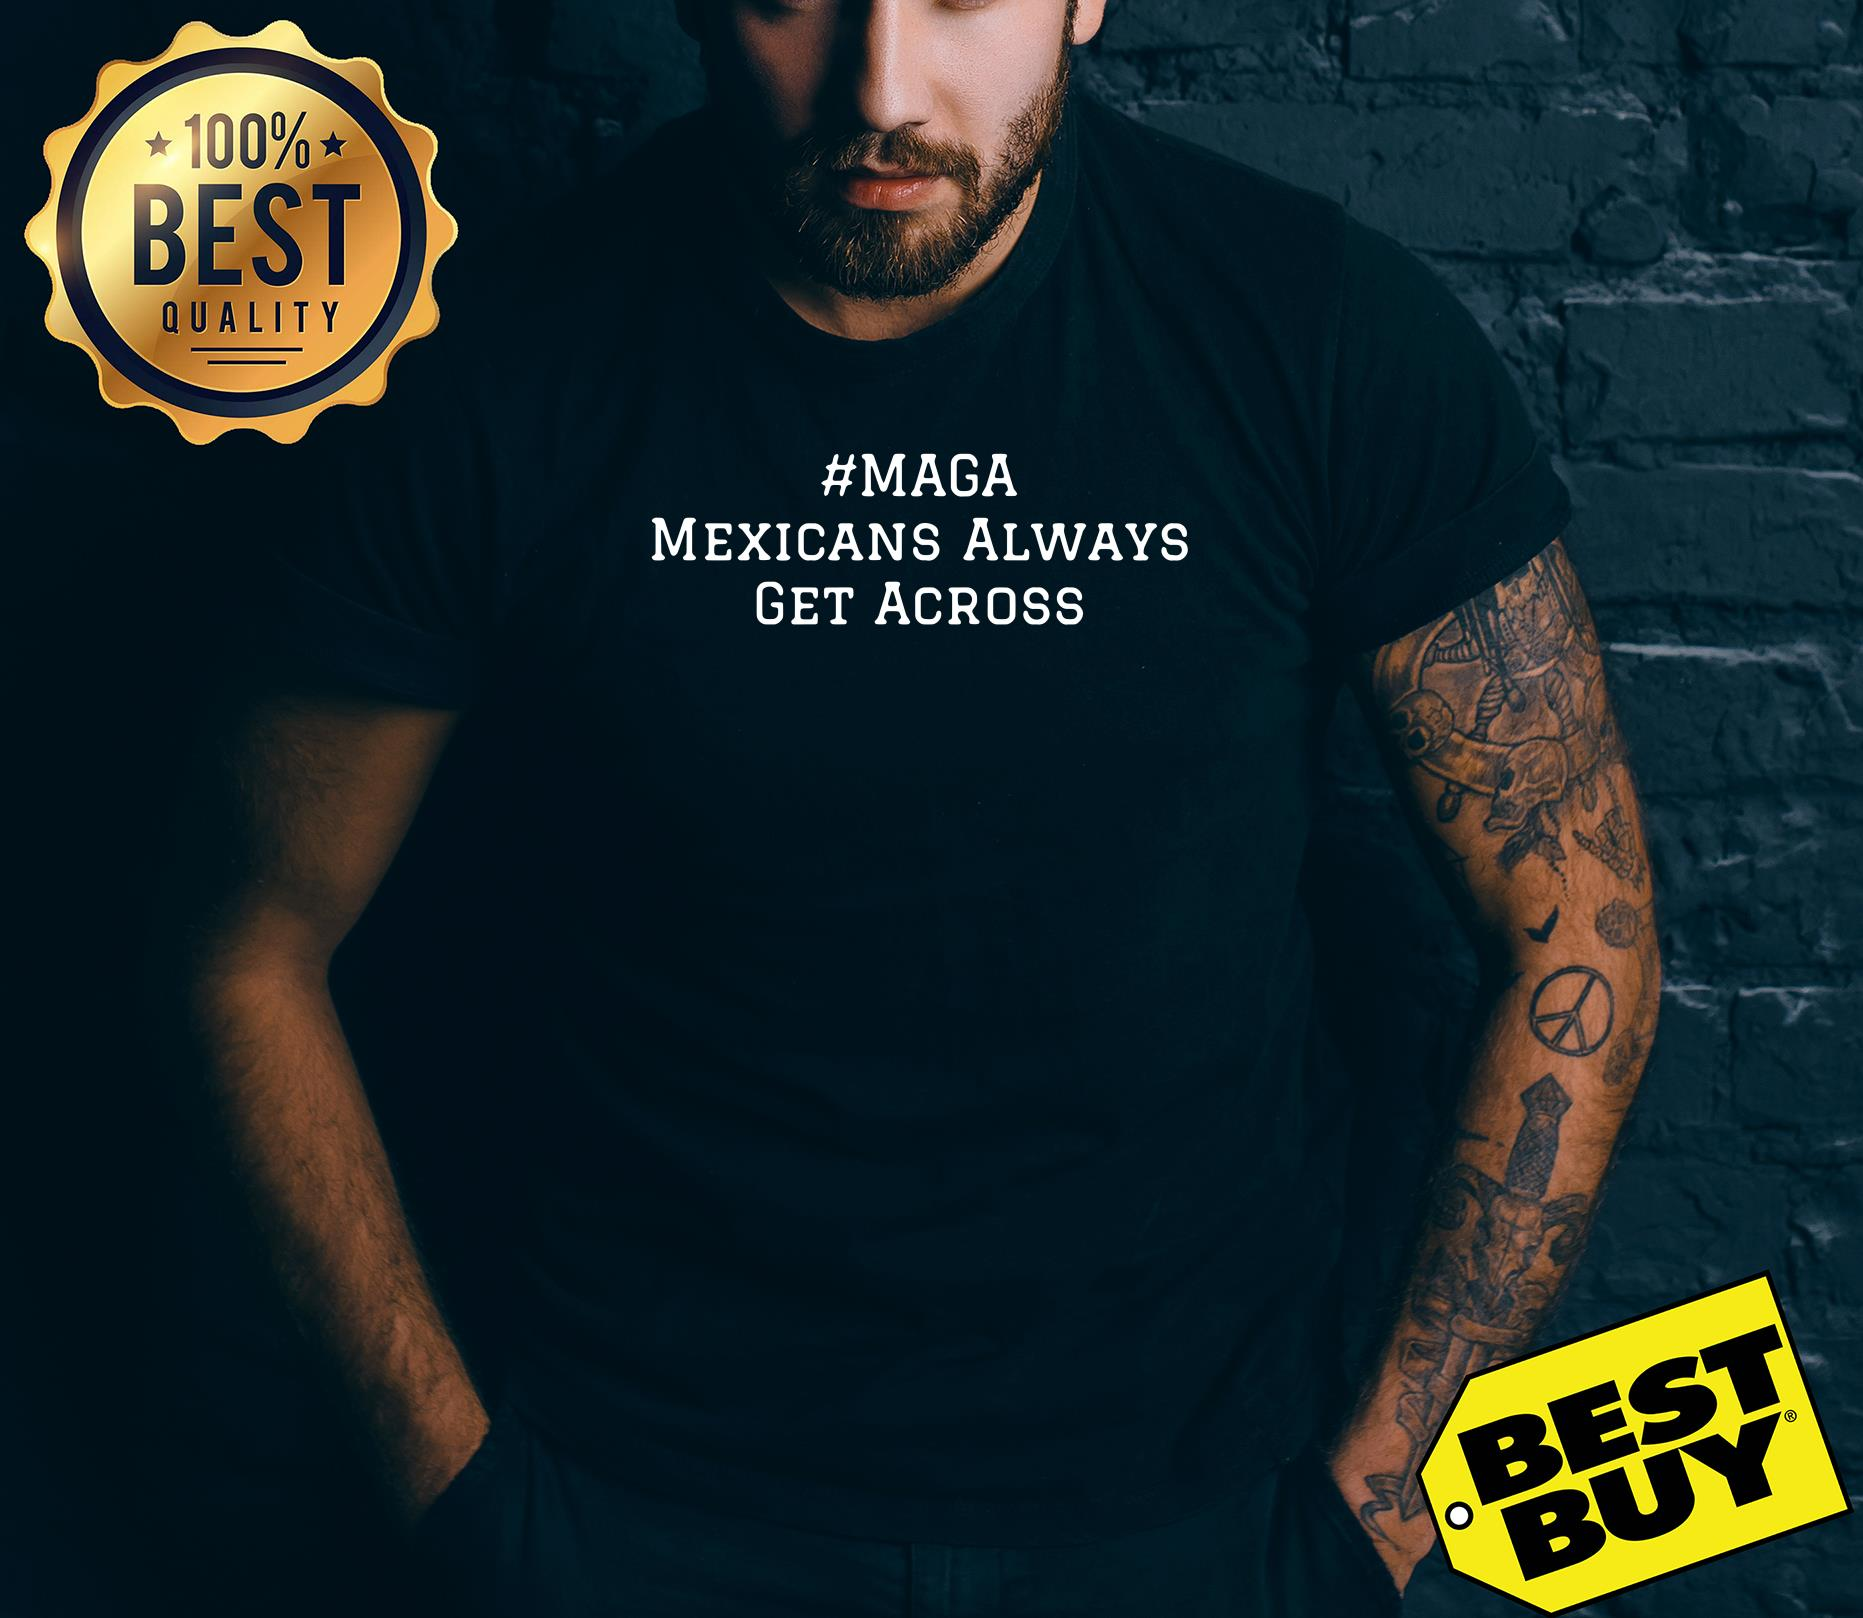 Maga Mexicans Always Get Across shirt